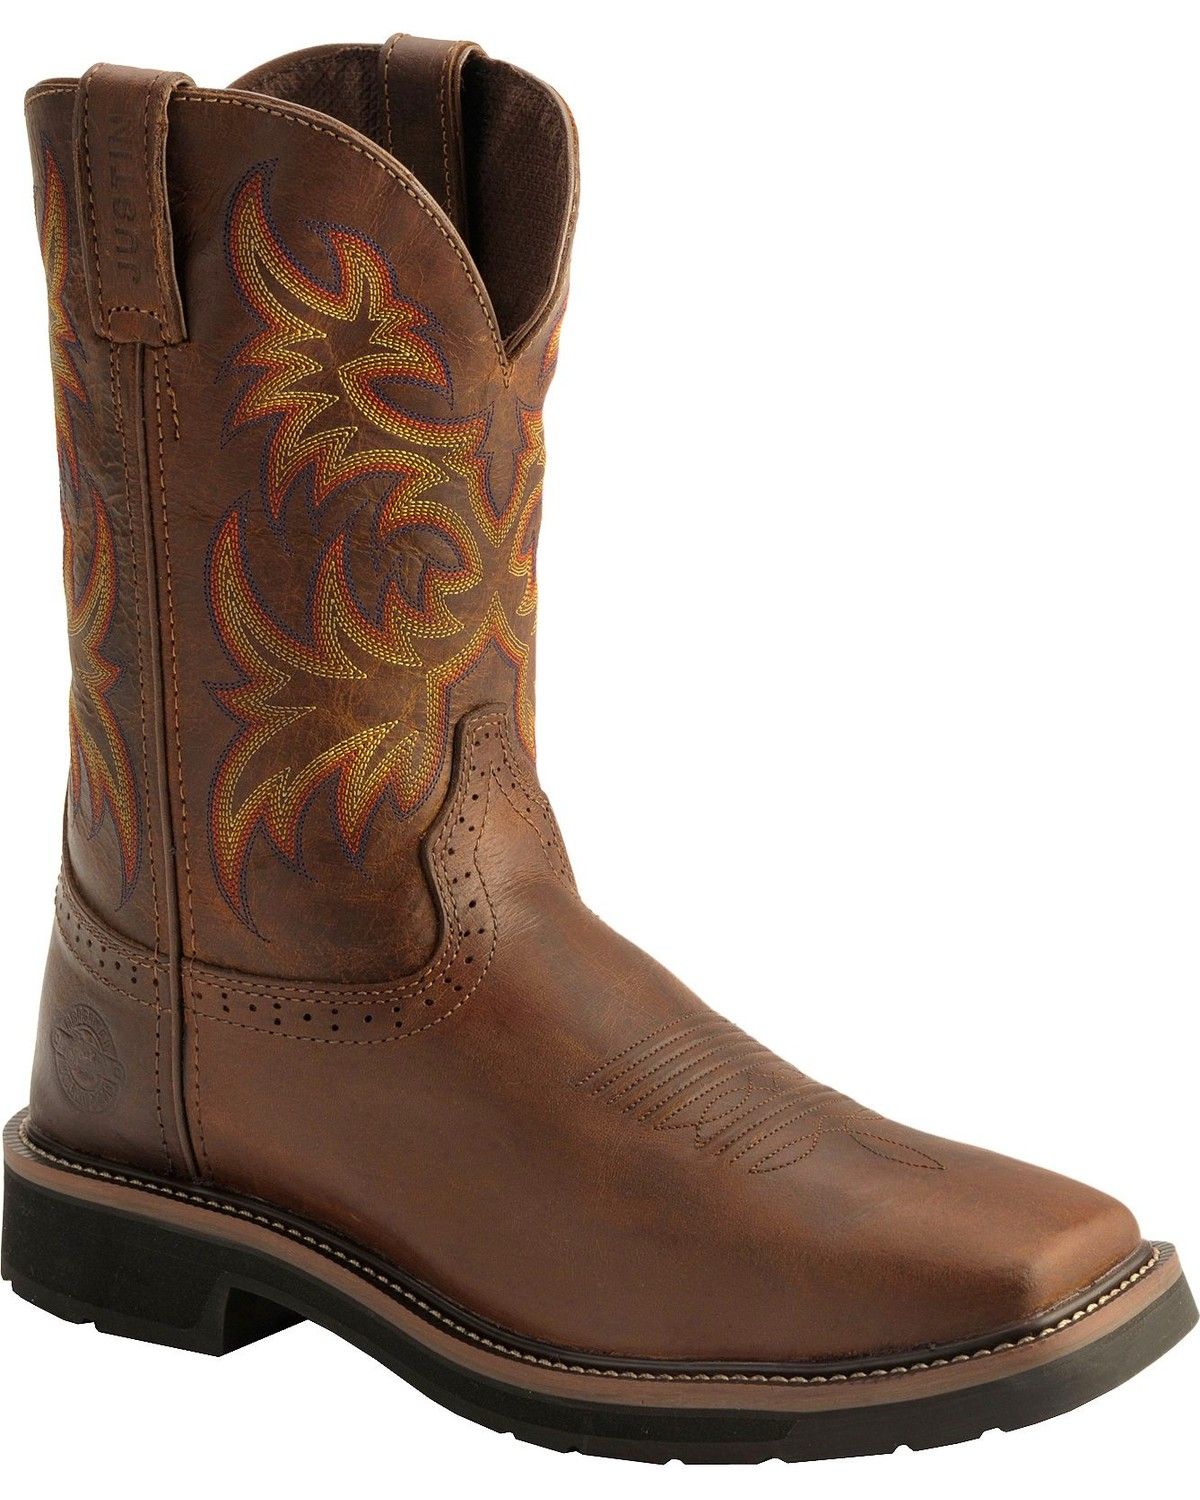 Rugged Western Work Boots